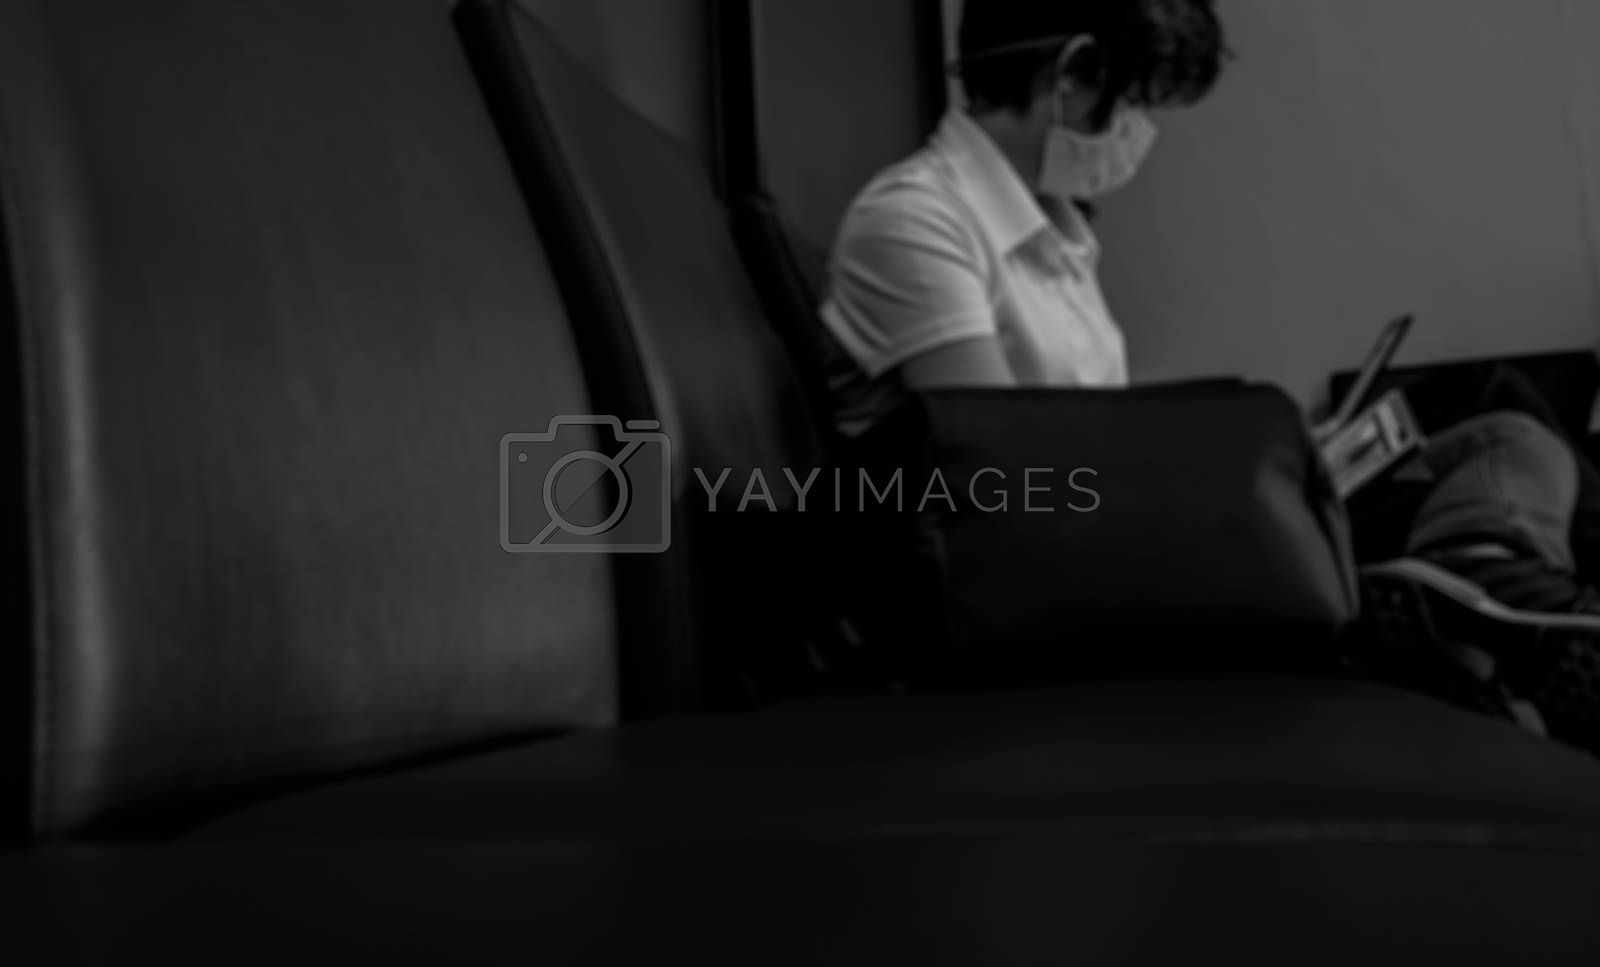 Blurred woman wear surgical mask and sit on seat using laptop for work in public place waiting for train or airplane flight. Social distancing concept. Coronavirus impact on people lifestyle.